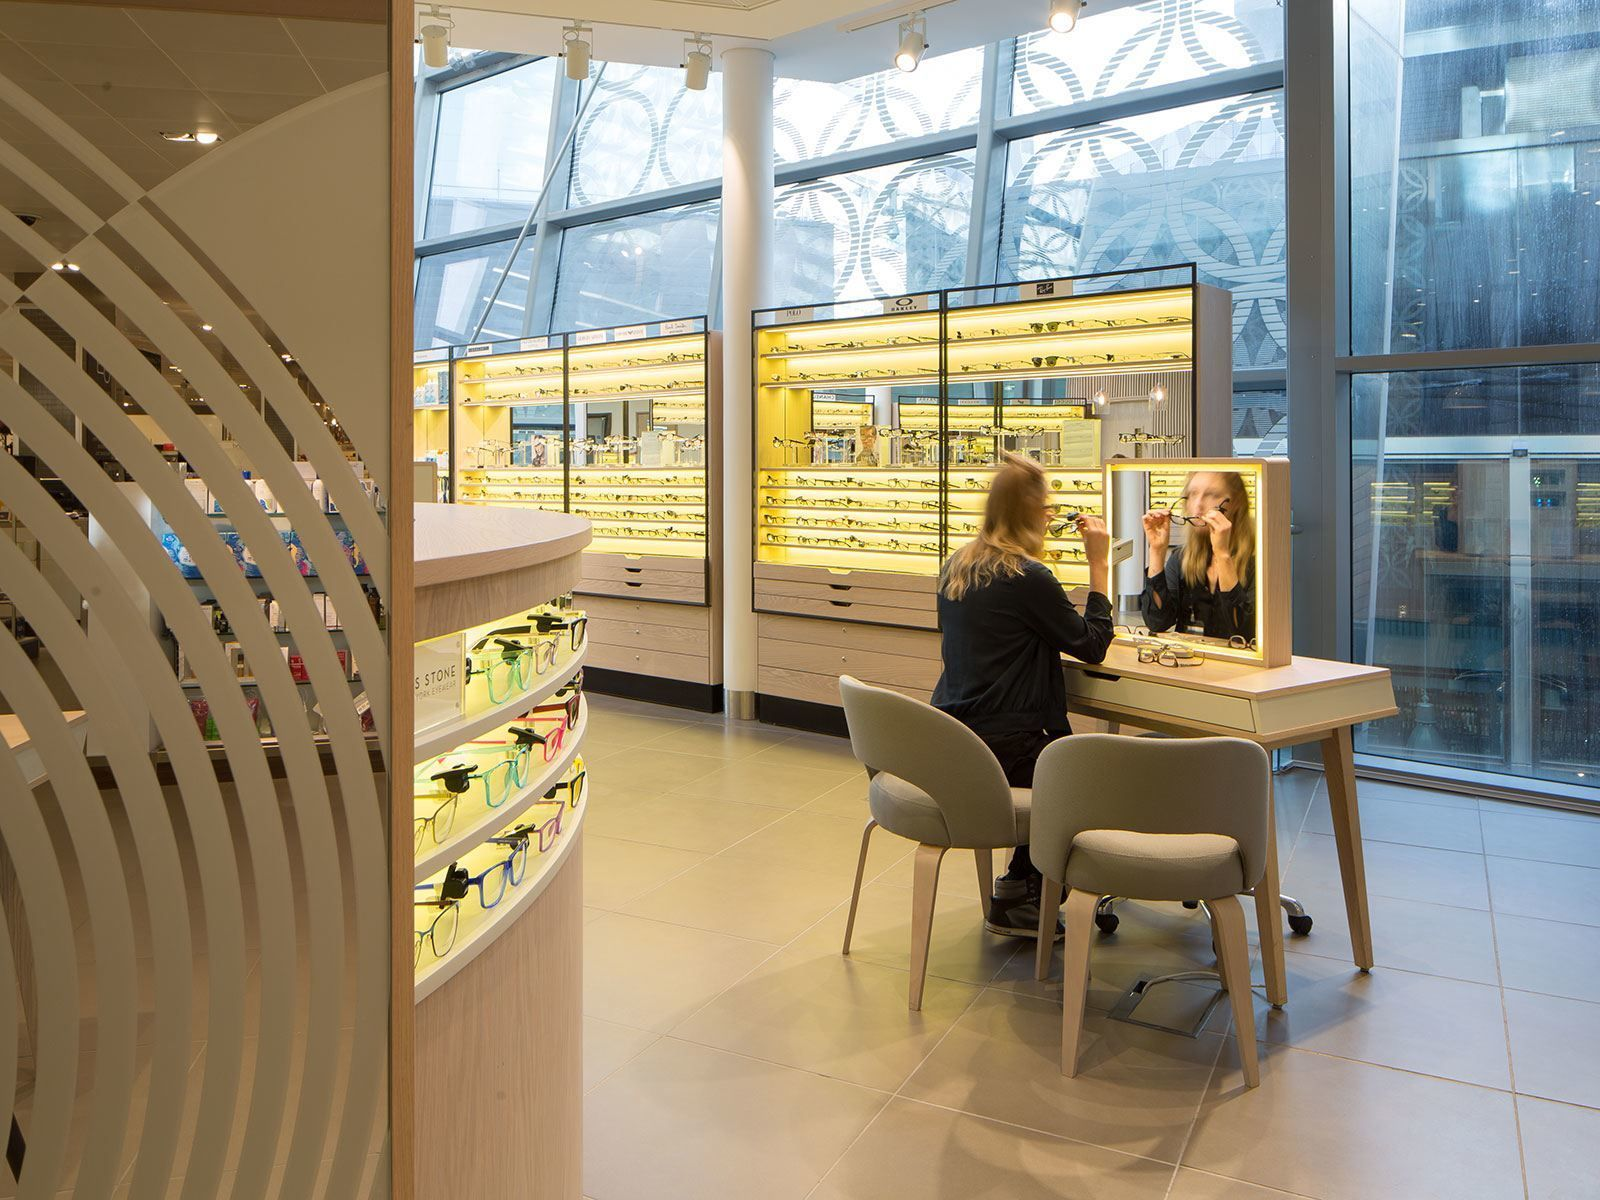 224e026e2c John Lewis Opticians - store concept designed by Household